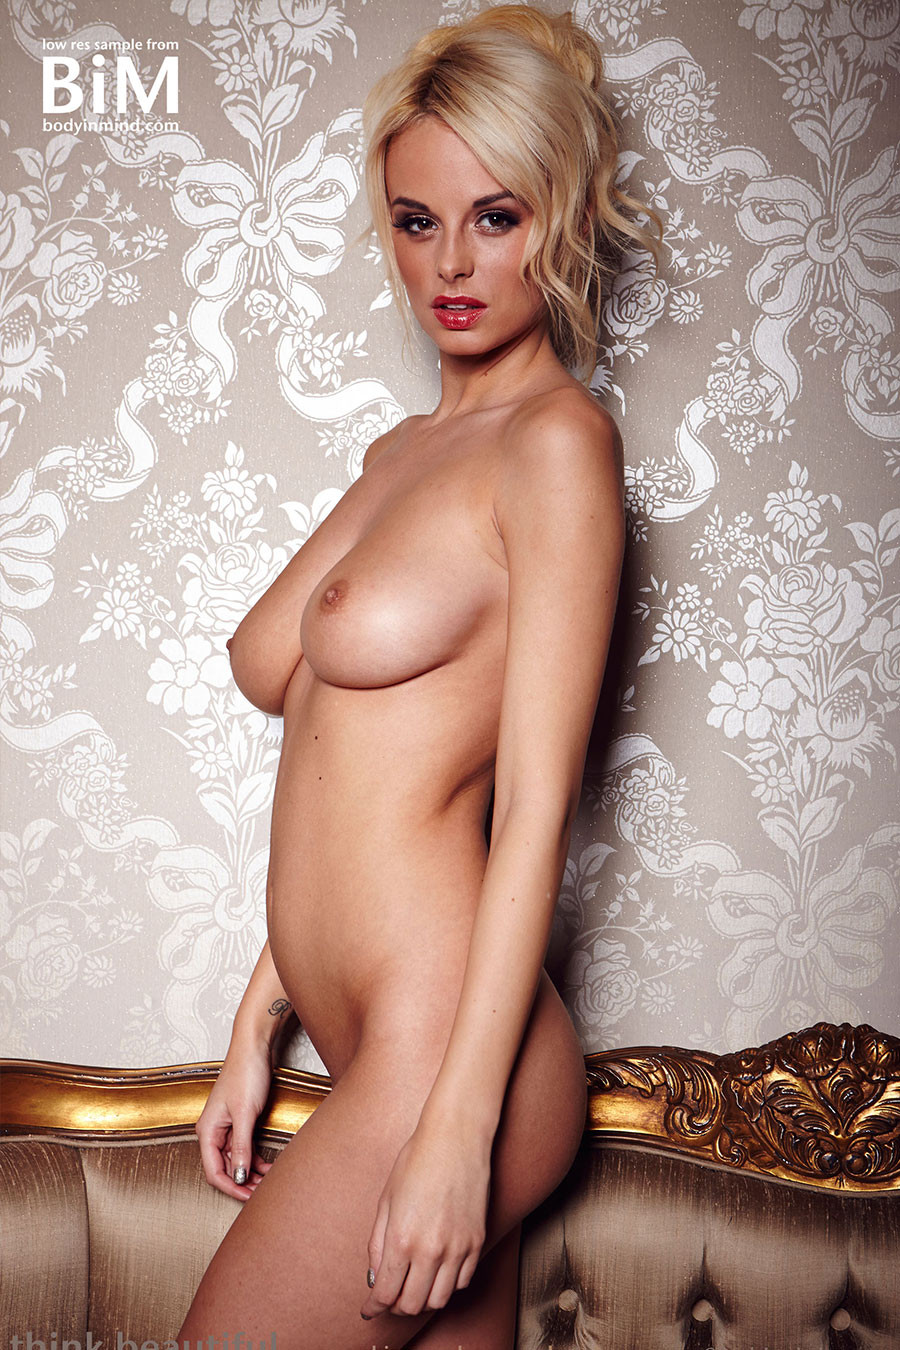 Body in Mind Nude Pictures Rhian Sugden 04